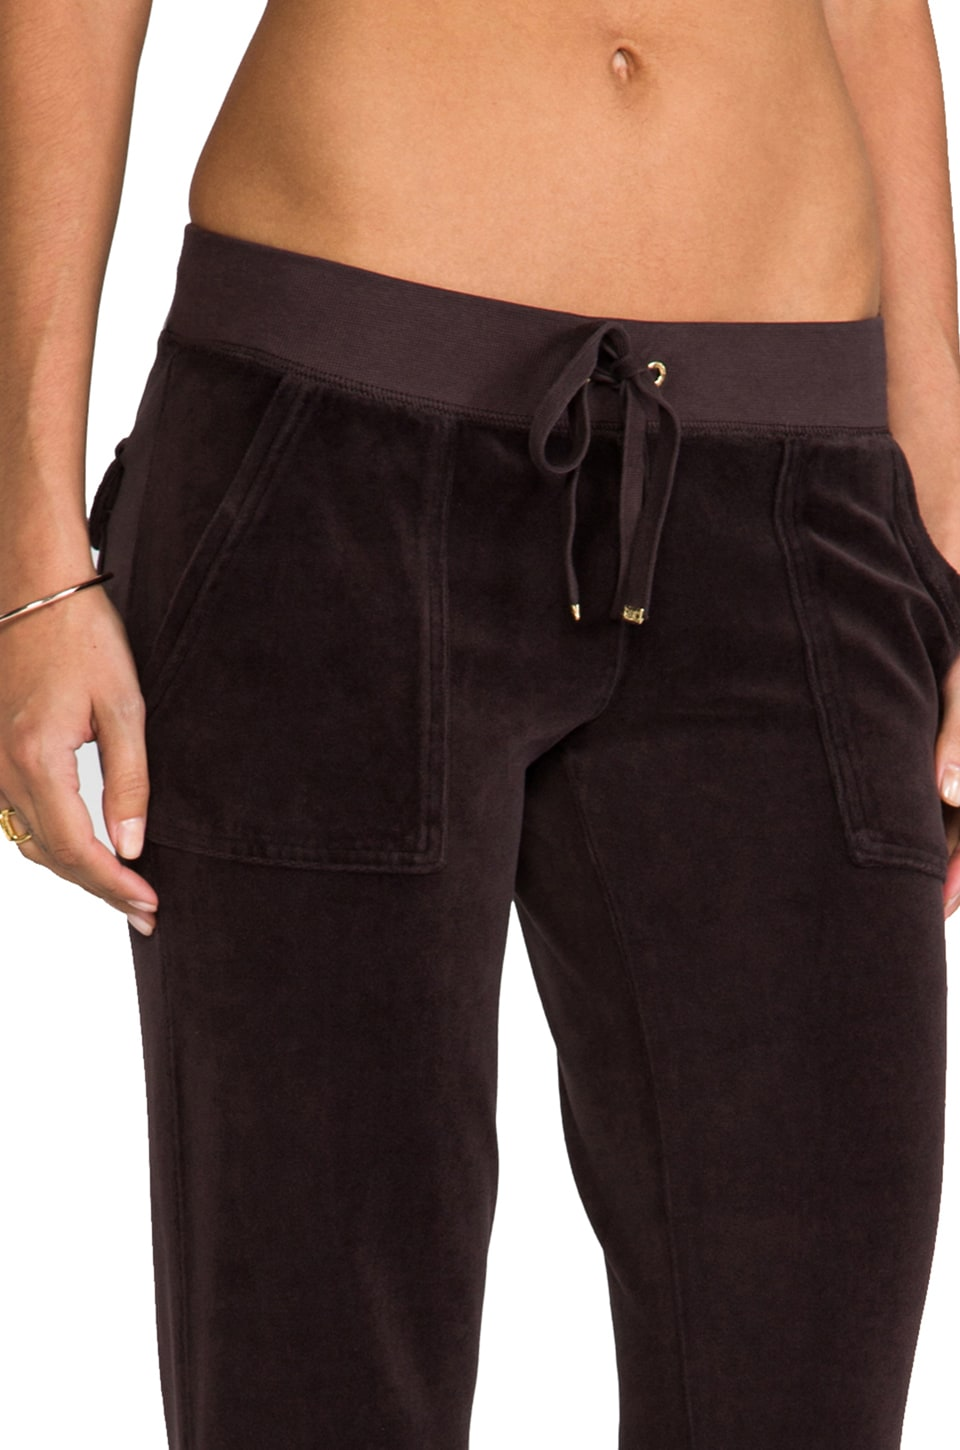 Juicy Couture Velour Flared Leg Pant with Snap Pockets in Chestnut